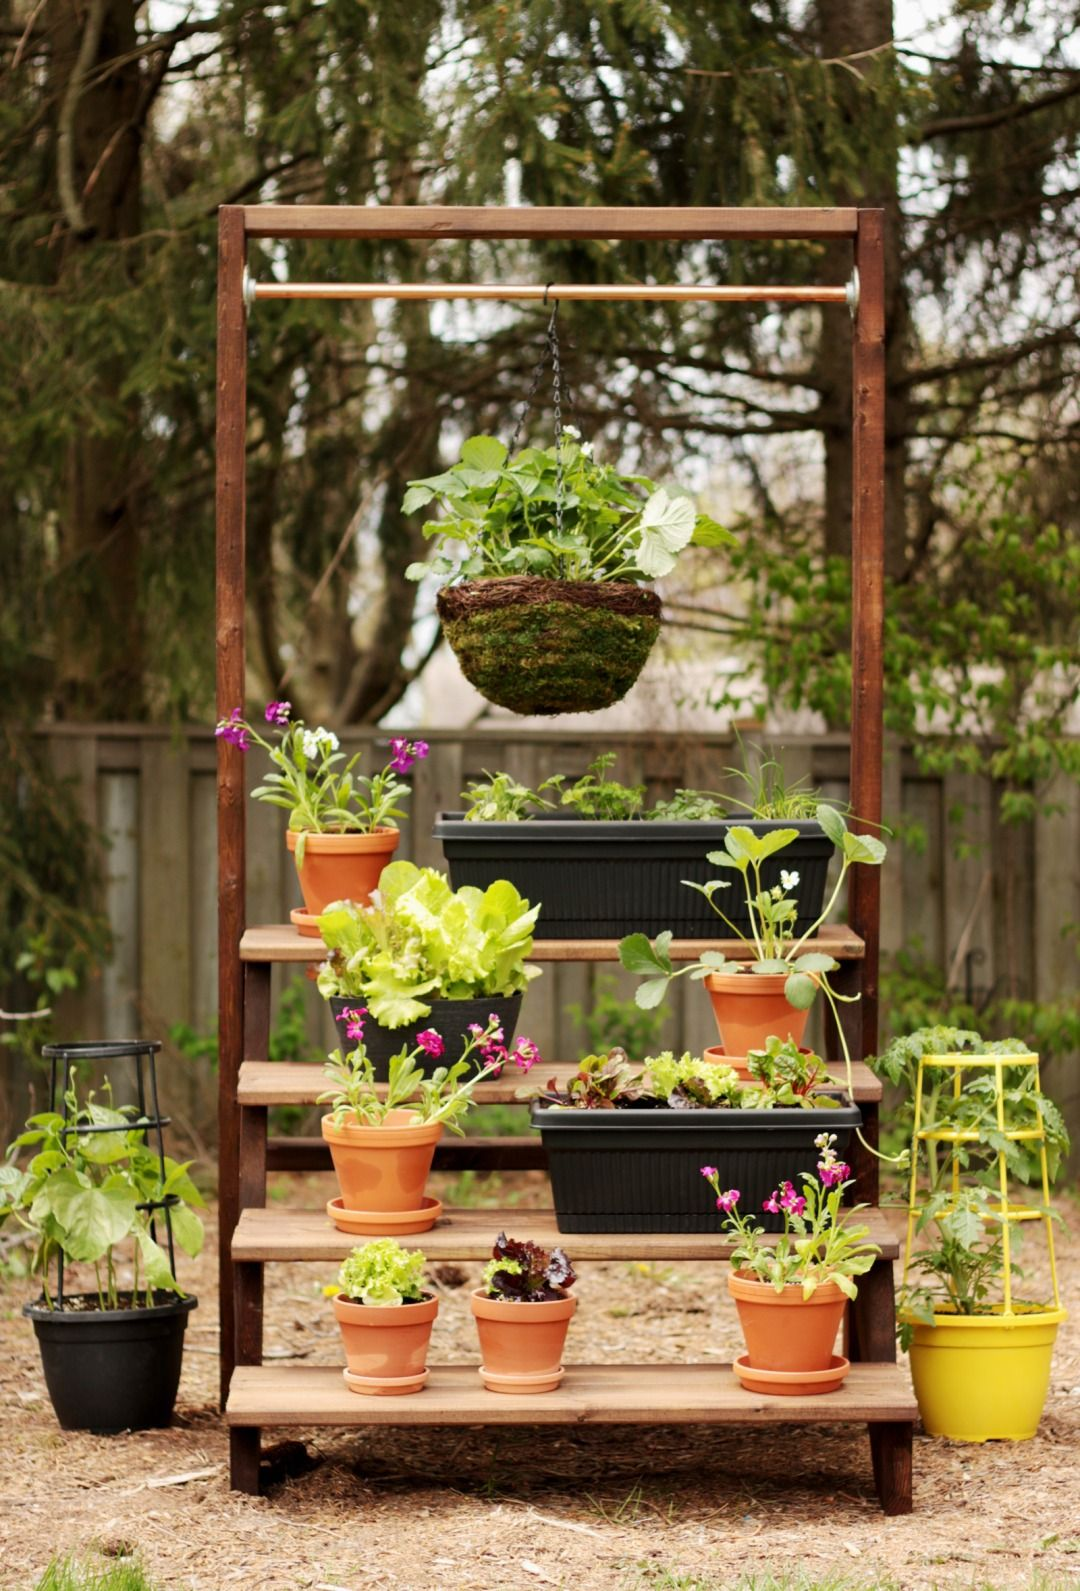 7 steps to a diy vertical garden for your planters